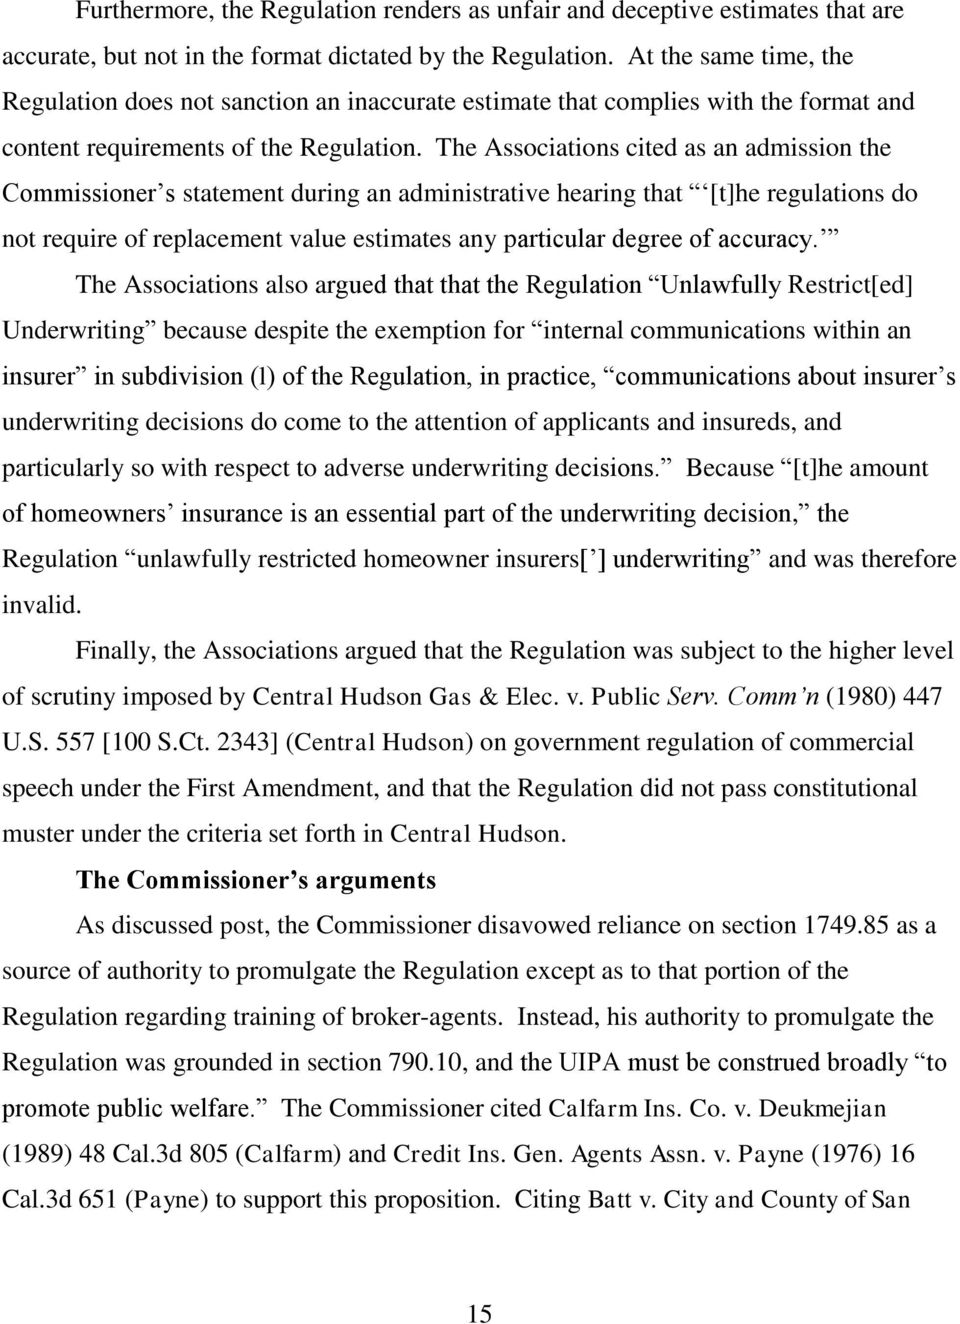 The Associations cited as an admission the Commissioner s statement during an administrative hearing that [t]he regulations do not require of replacement value estimates any particular degree of